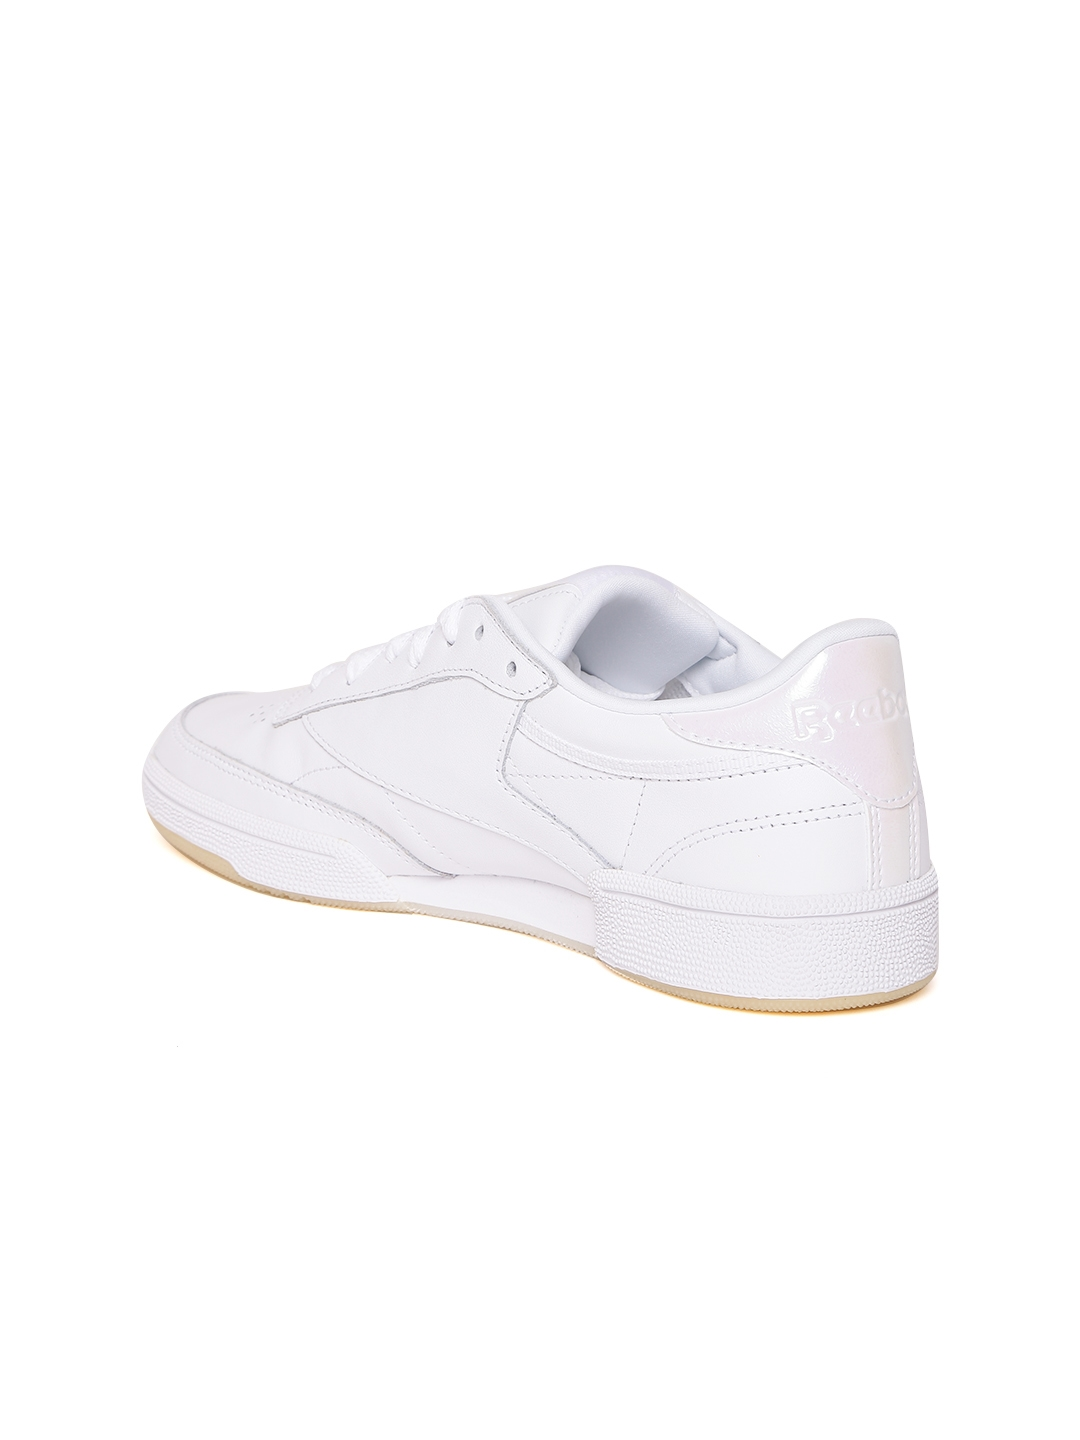 93ec40f3baf2 Buy Reebok Classic Women Off White Club C 85 Leather Sneakers ...